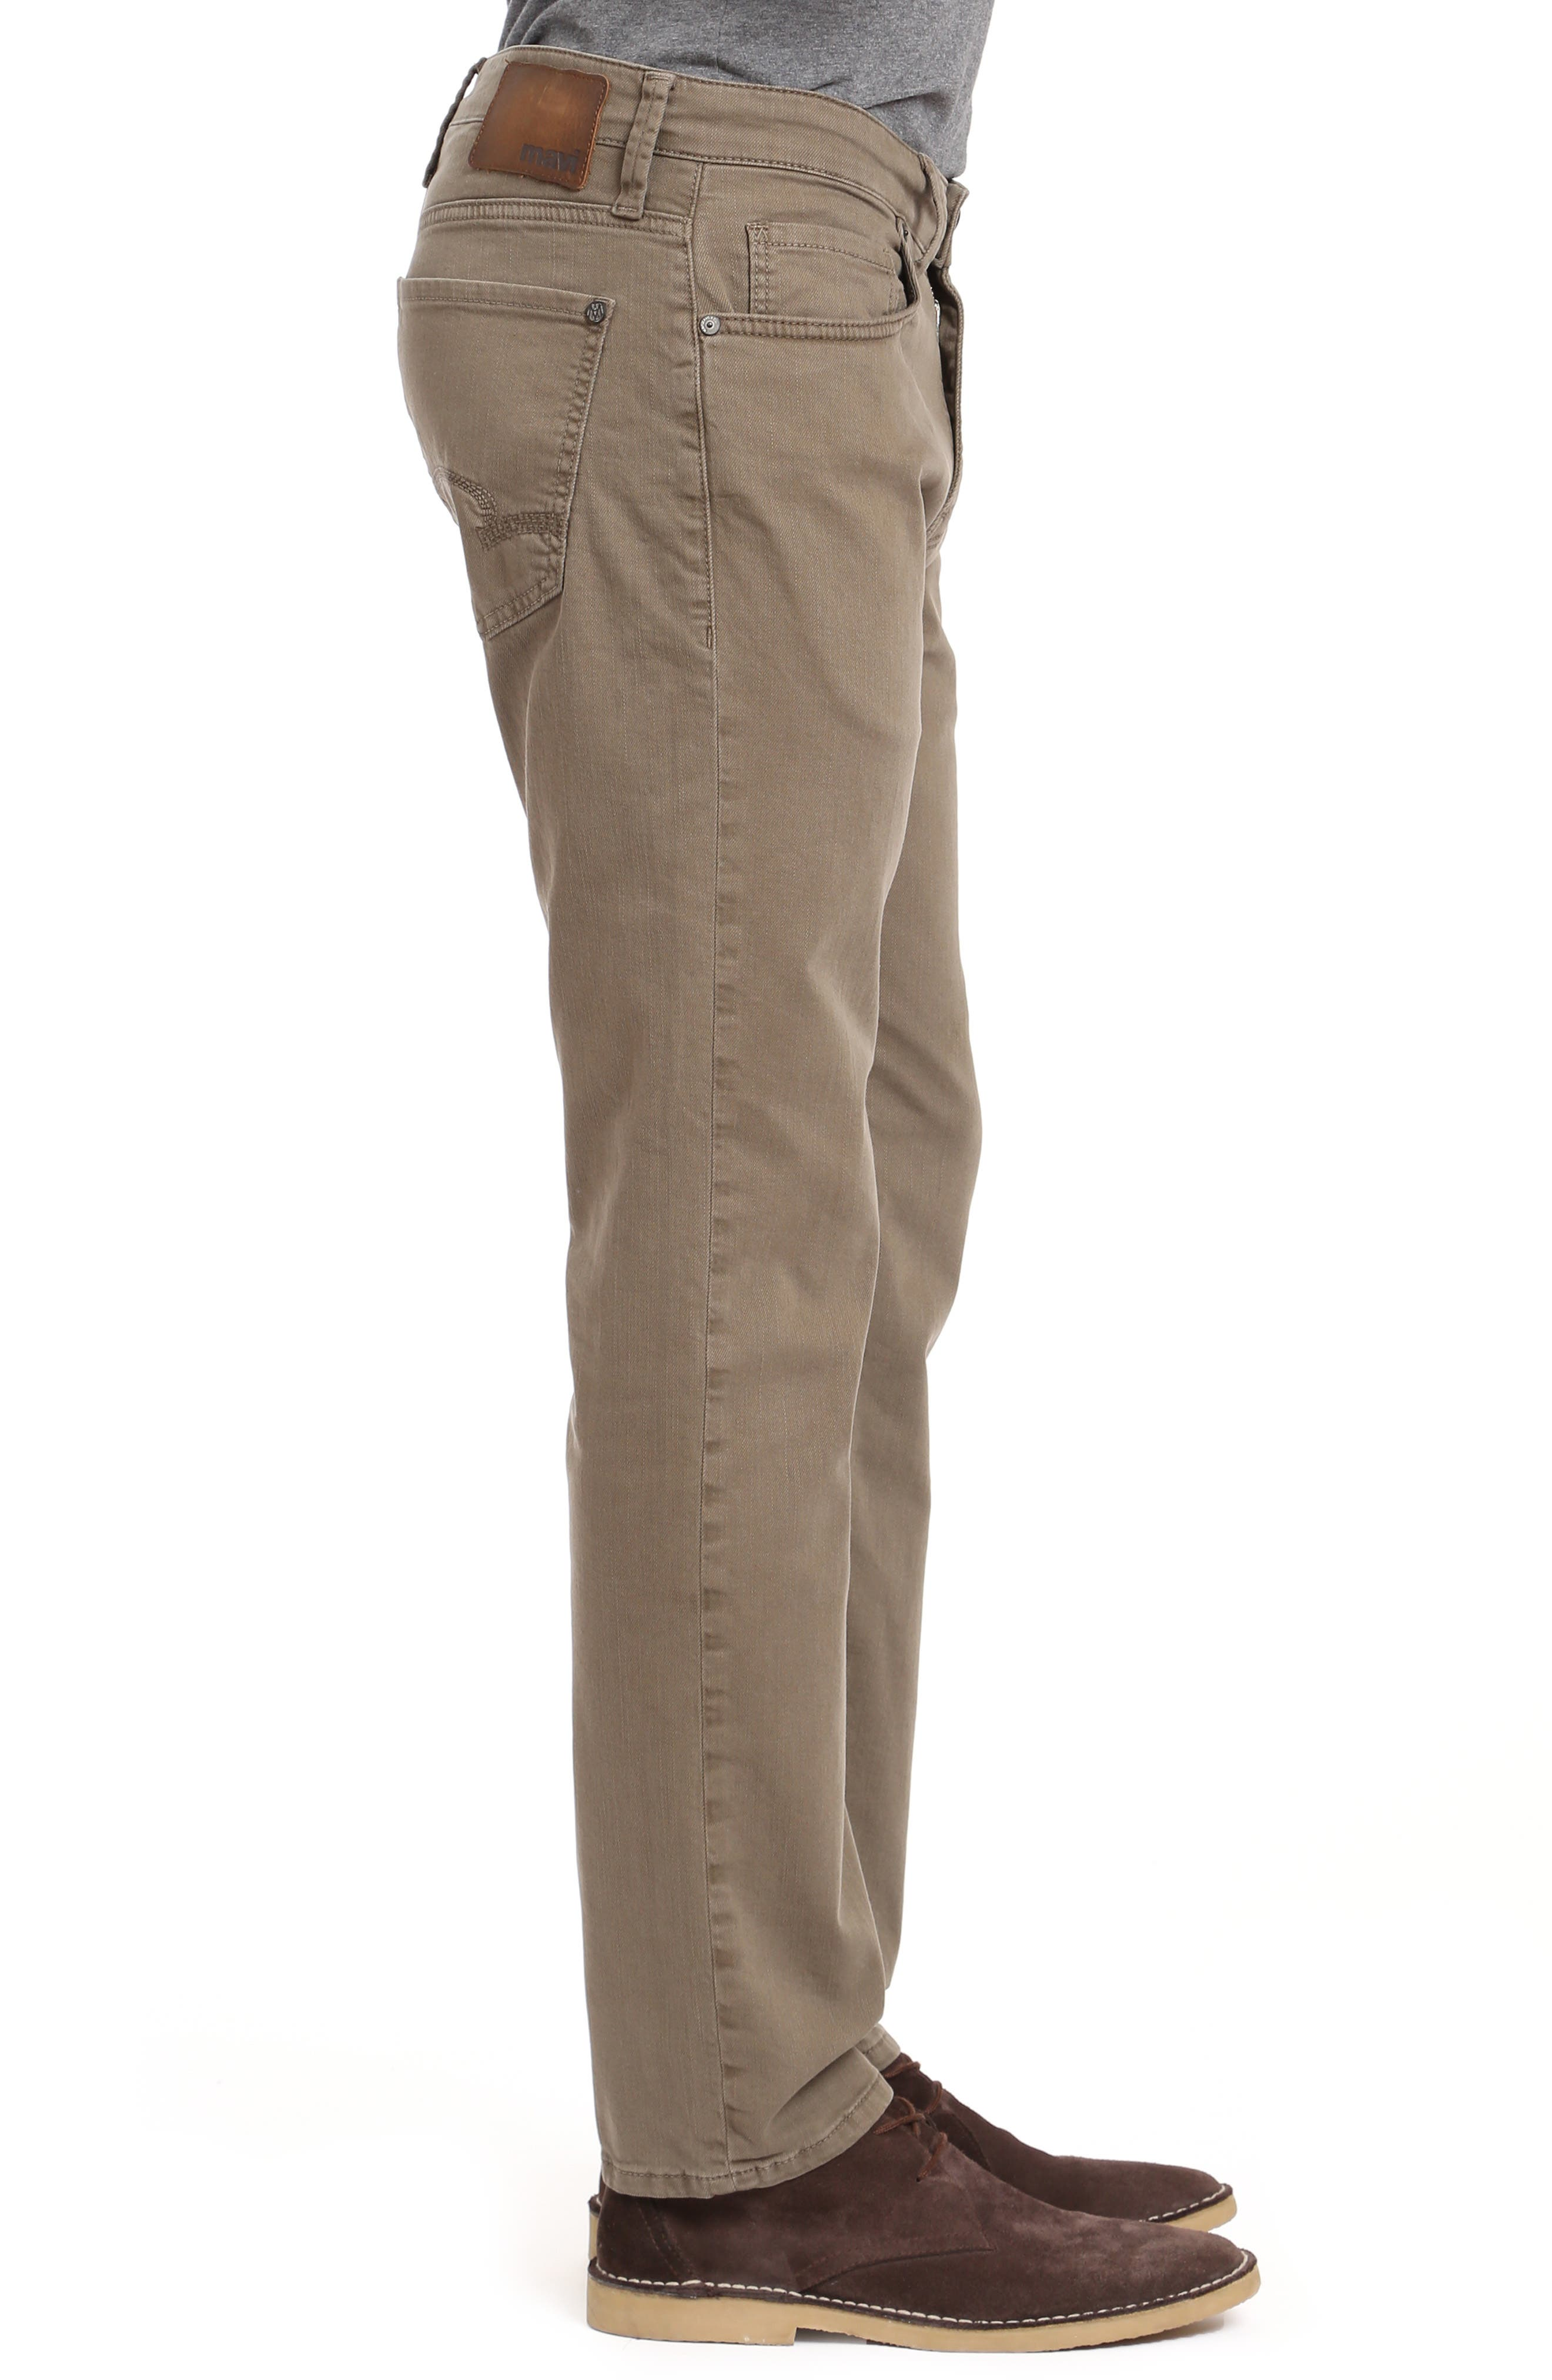 Zach Straight Leg Jeans,                             Alternate thumbnail 3, color,                             KHAKI WASHED COMFORT